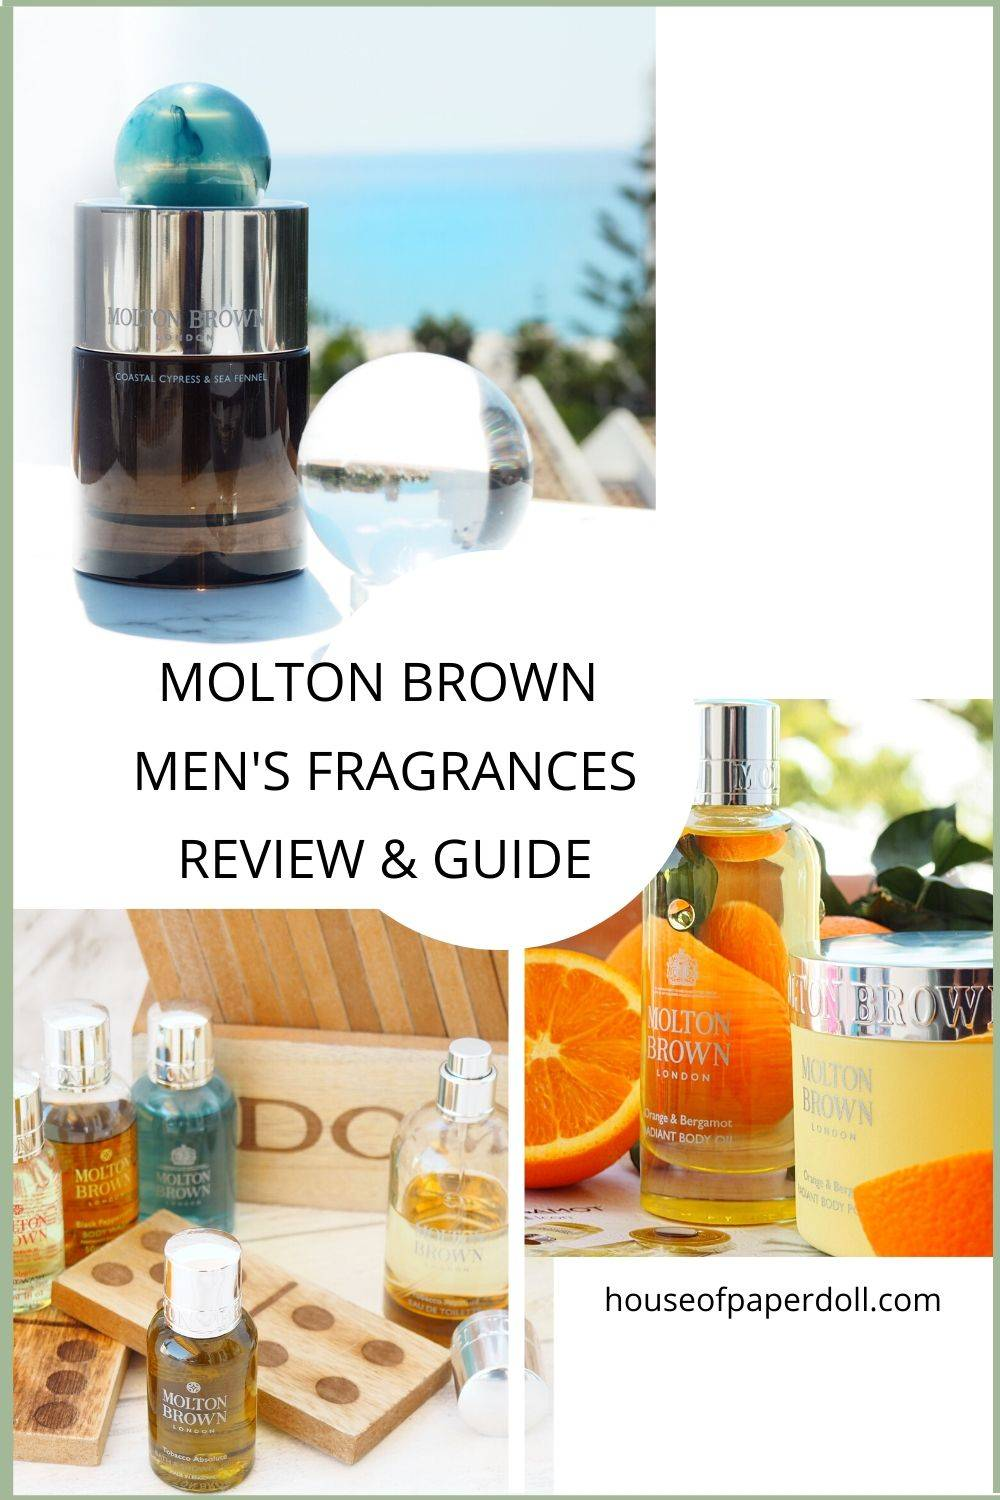 MOLTON BROWN MENS FRAGRANCES AND GUIDE